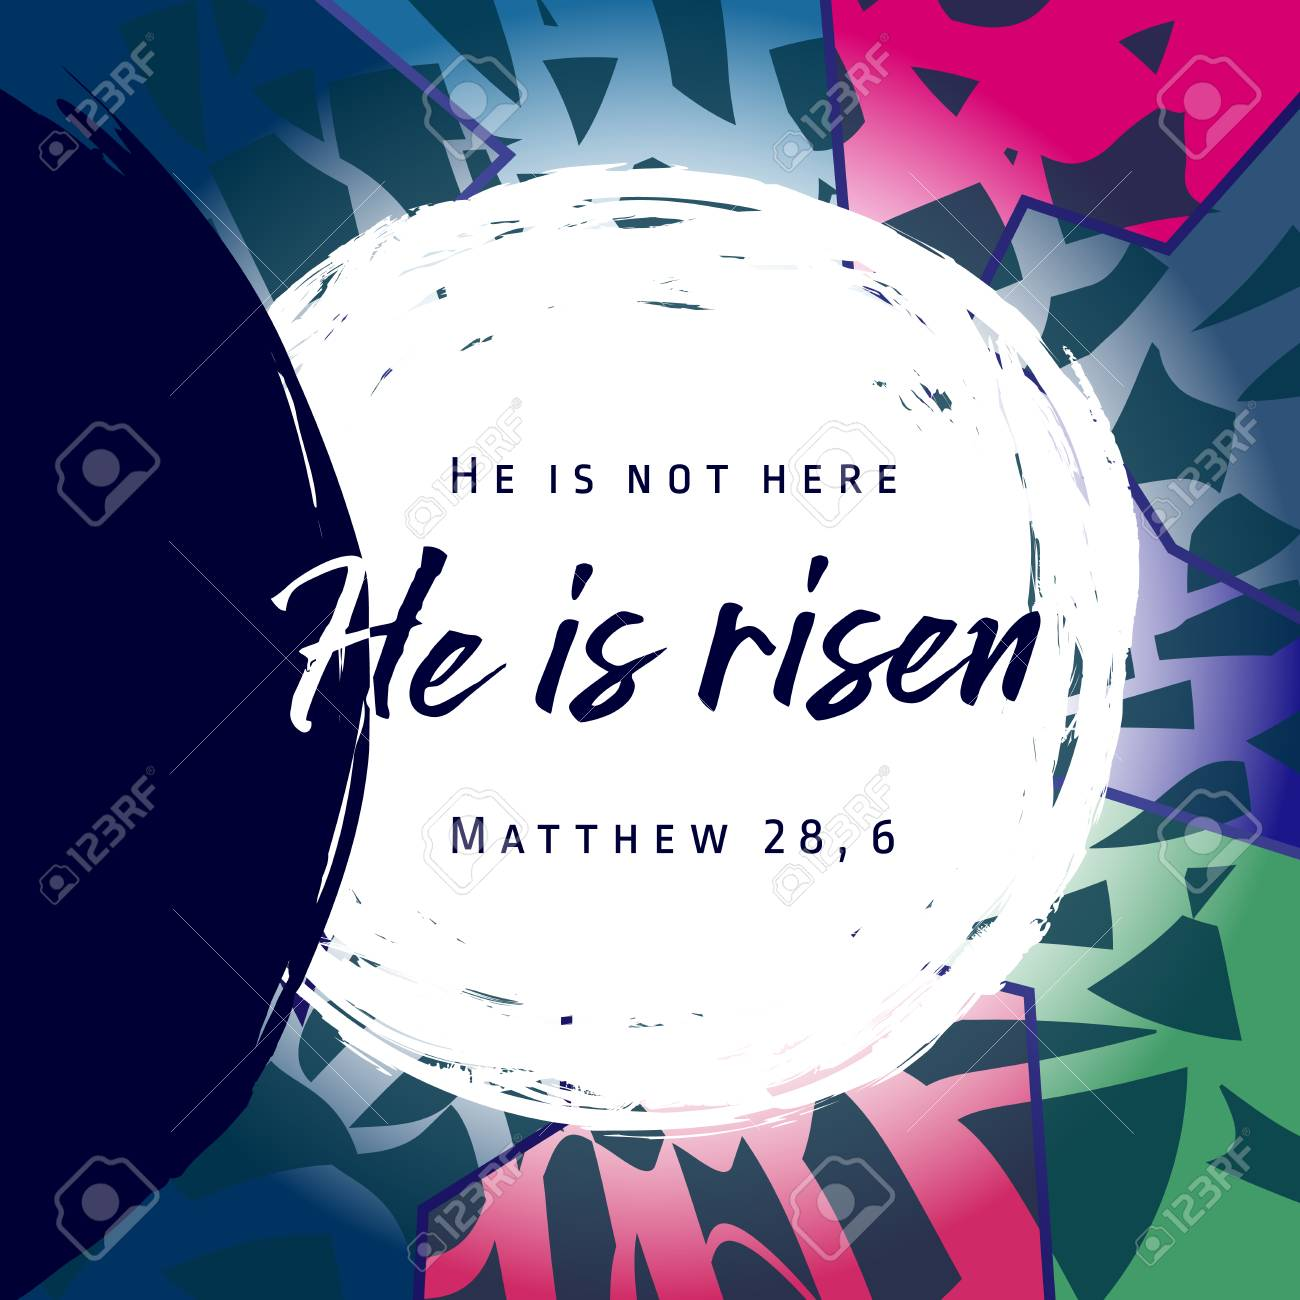 He is risen, He is not here. Invitation vector blue color template. Open lighting empty cave shining angel inside. Religious greetings. Jesus up from dead. Light in the end of the tunnel. Isolated element - 96620359